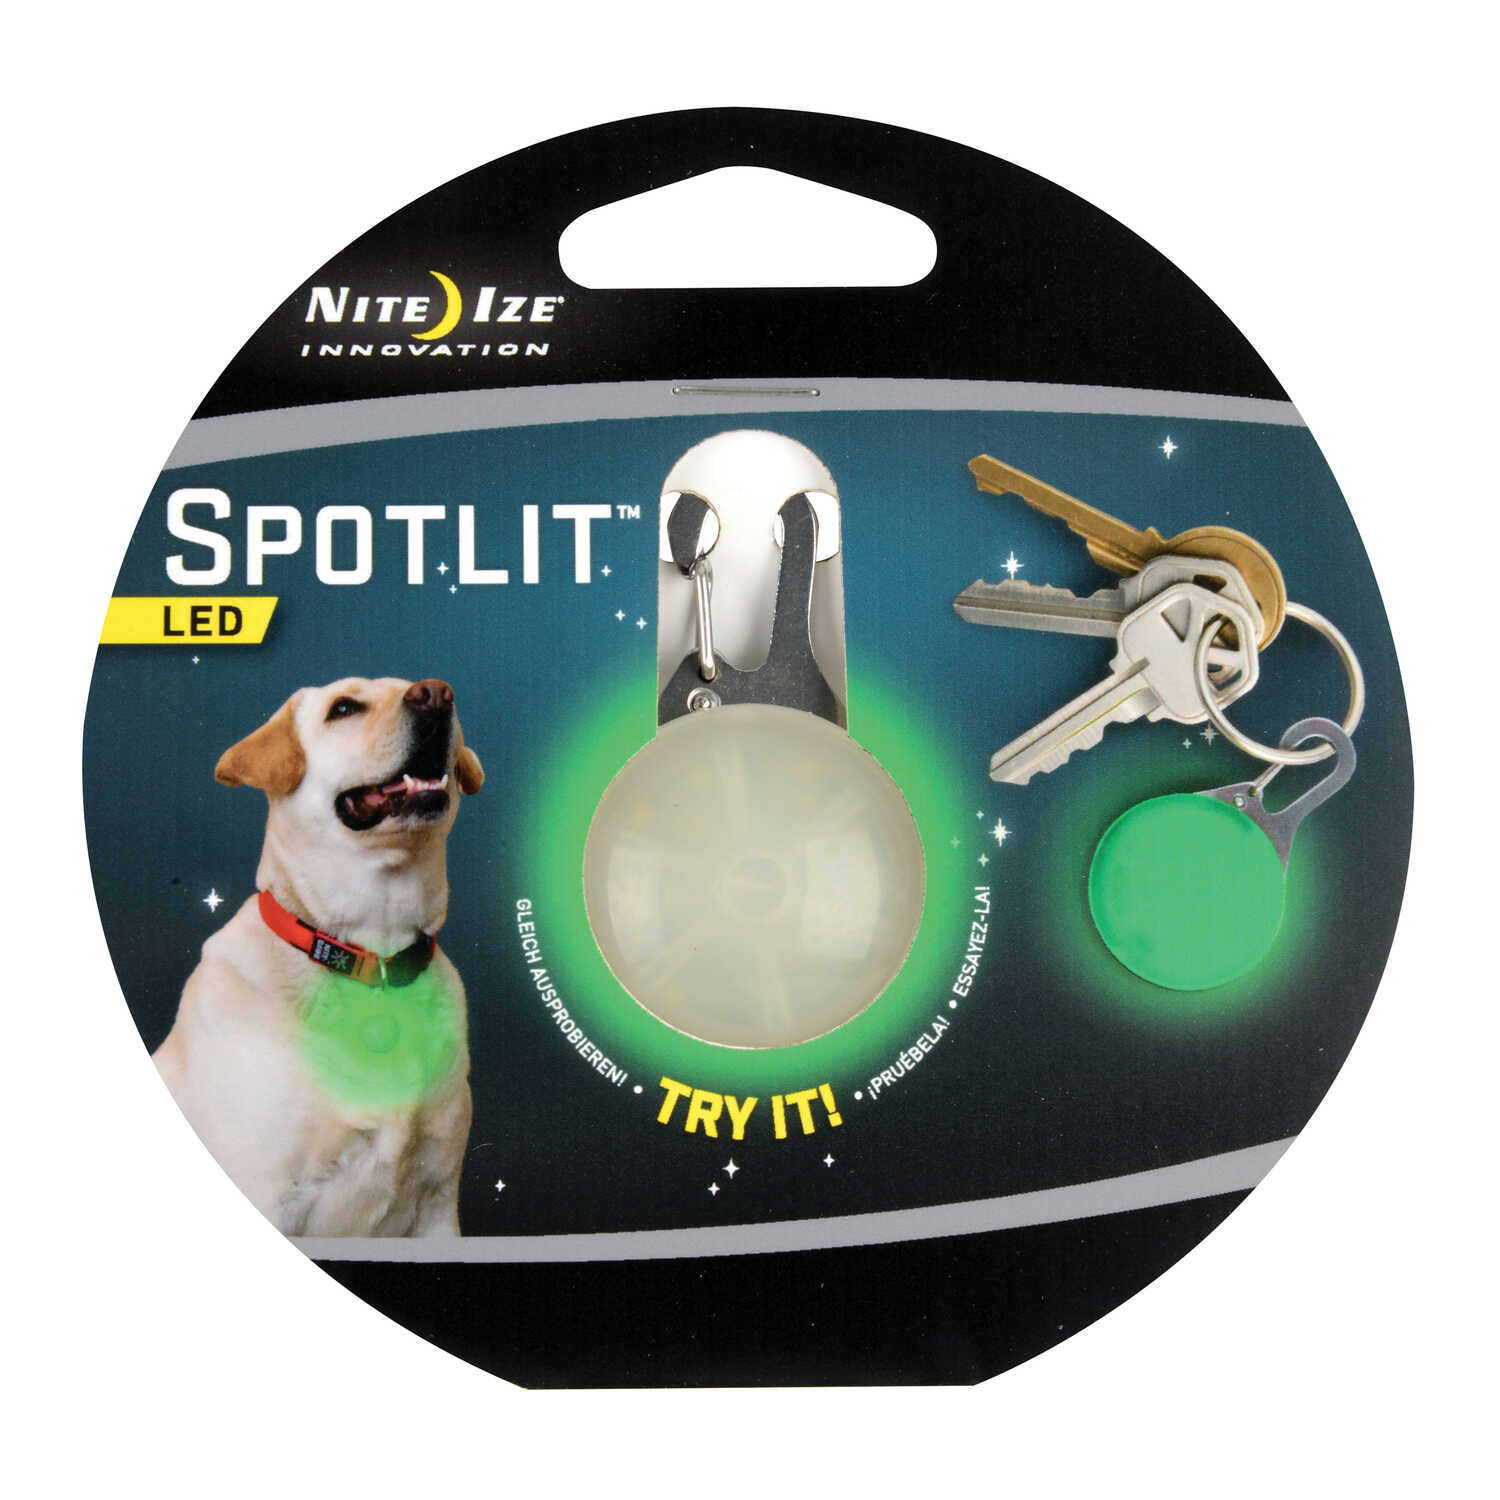 Nite Ize  SpotLit  Stainless Steel  LED Carabiner  Green